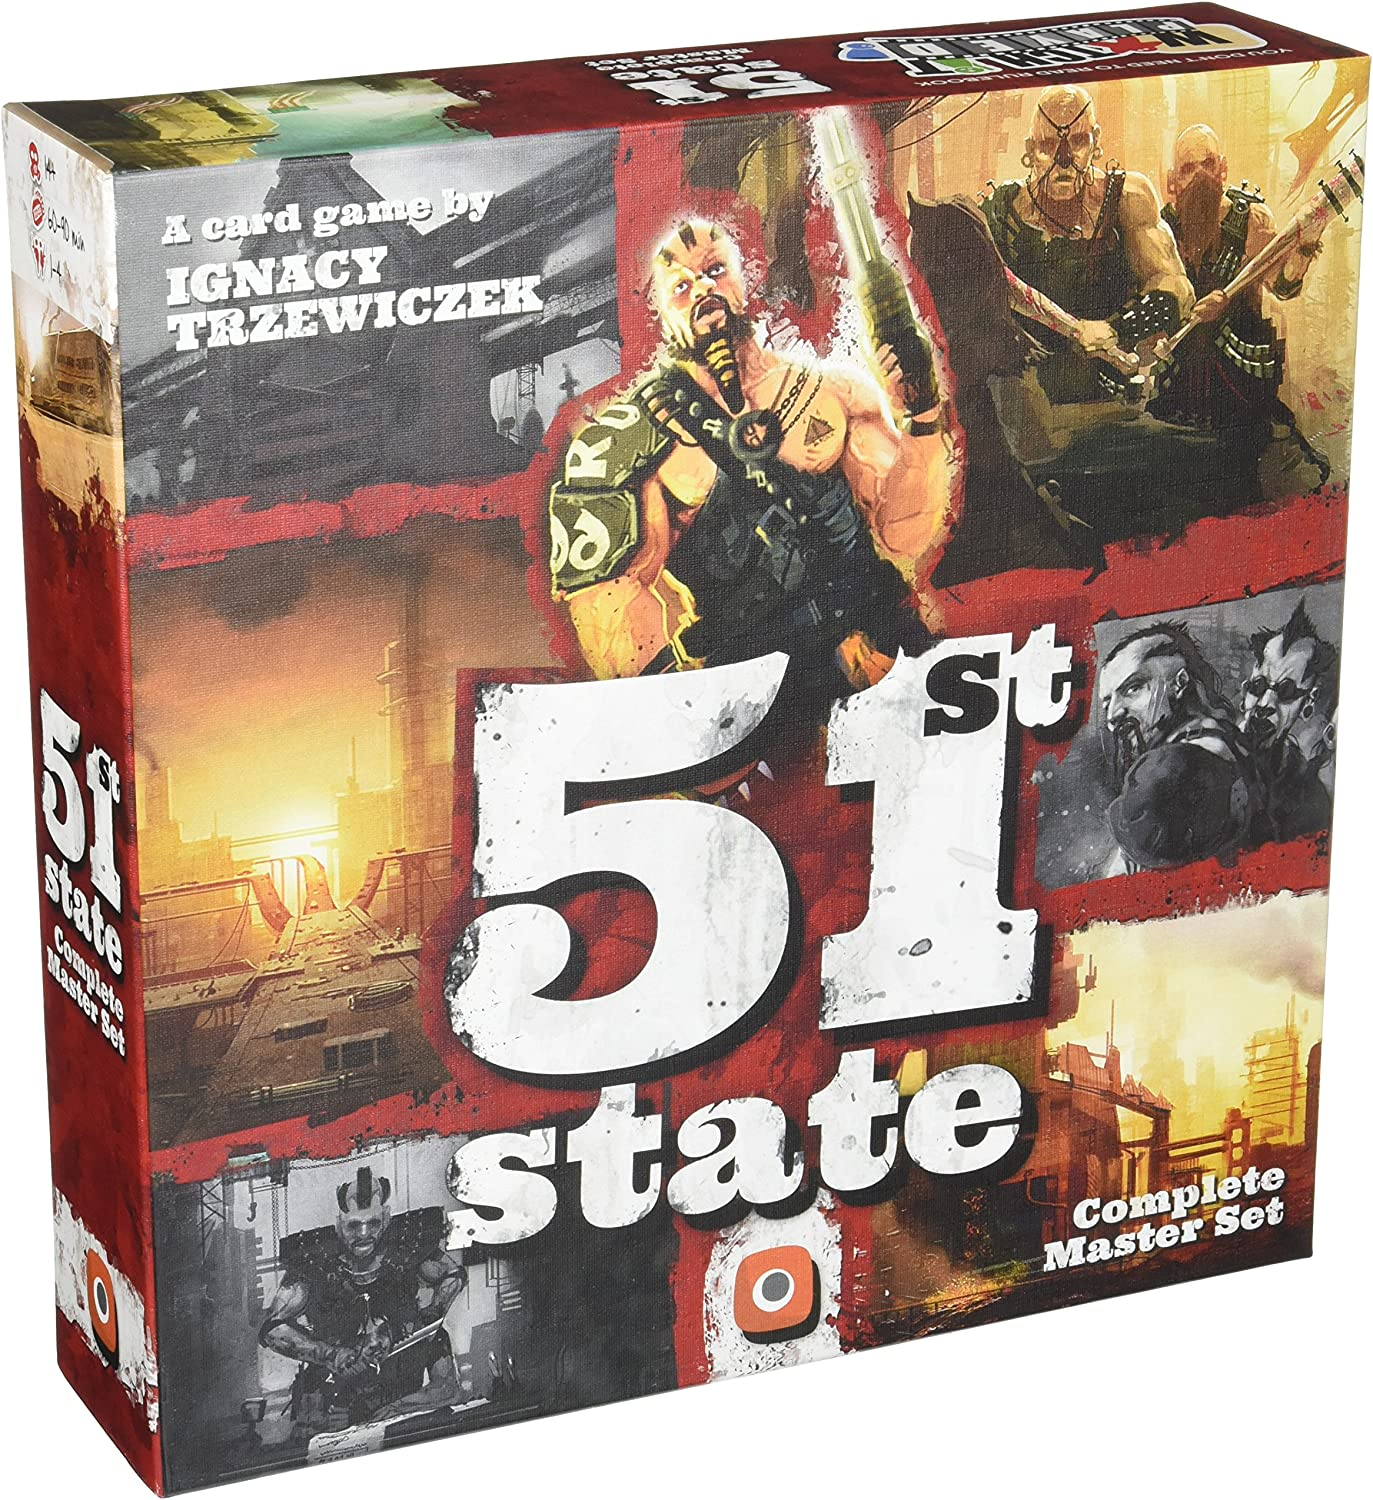 51st State Master Set Board Game: Amazon.co.uk: Toys & Games